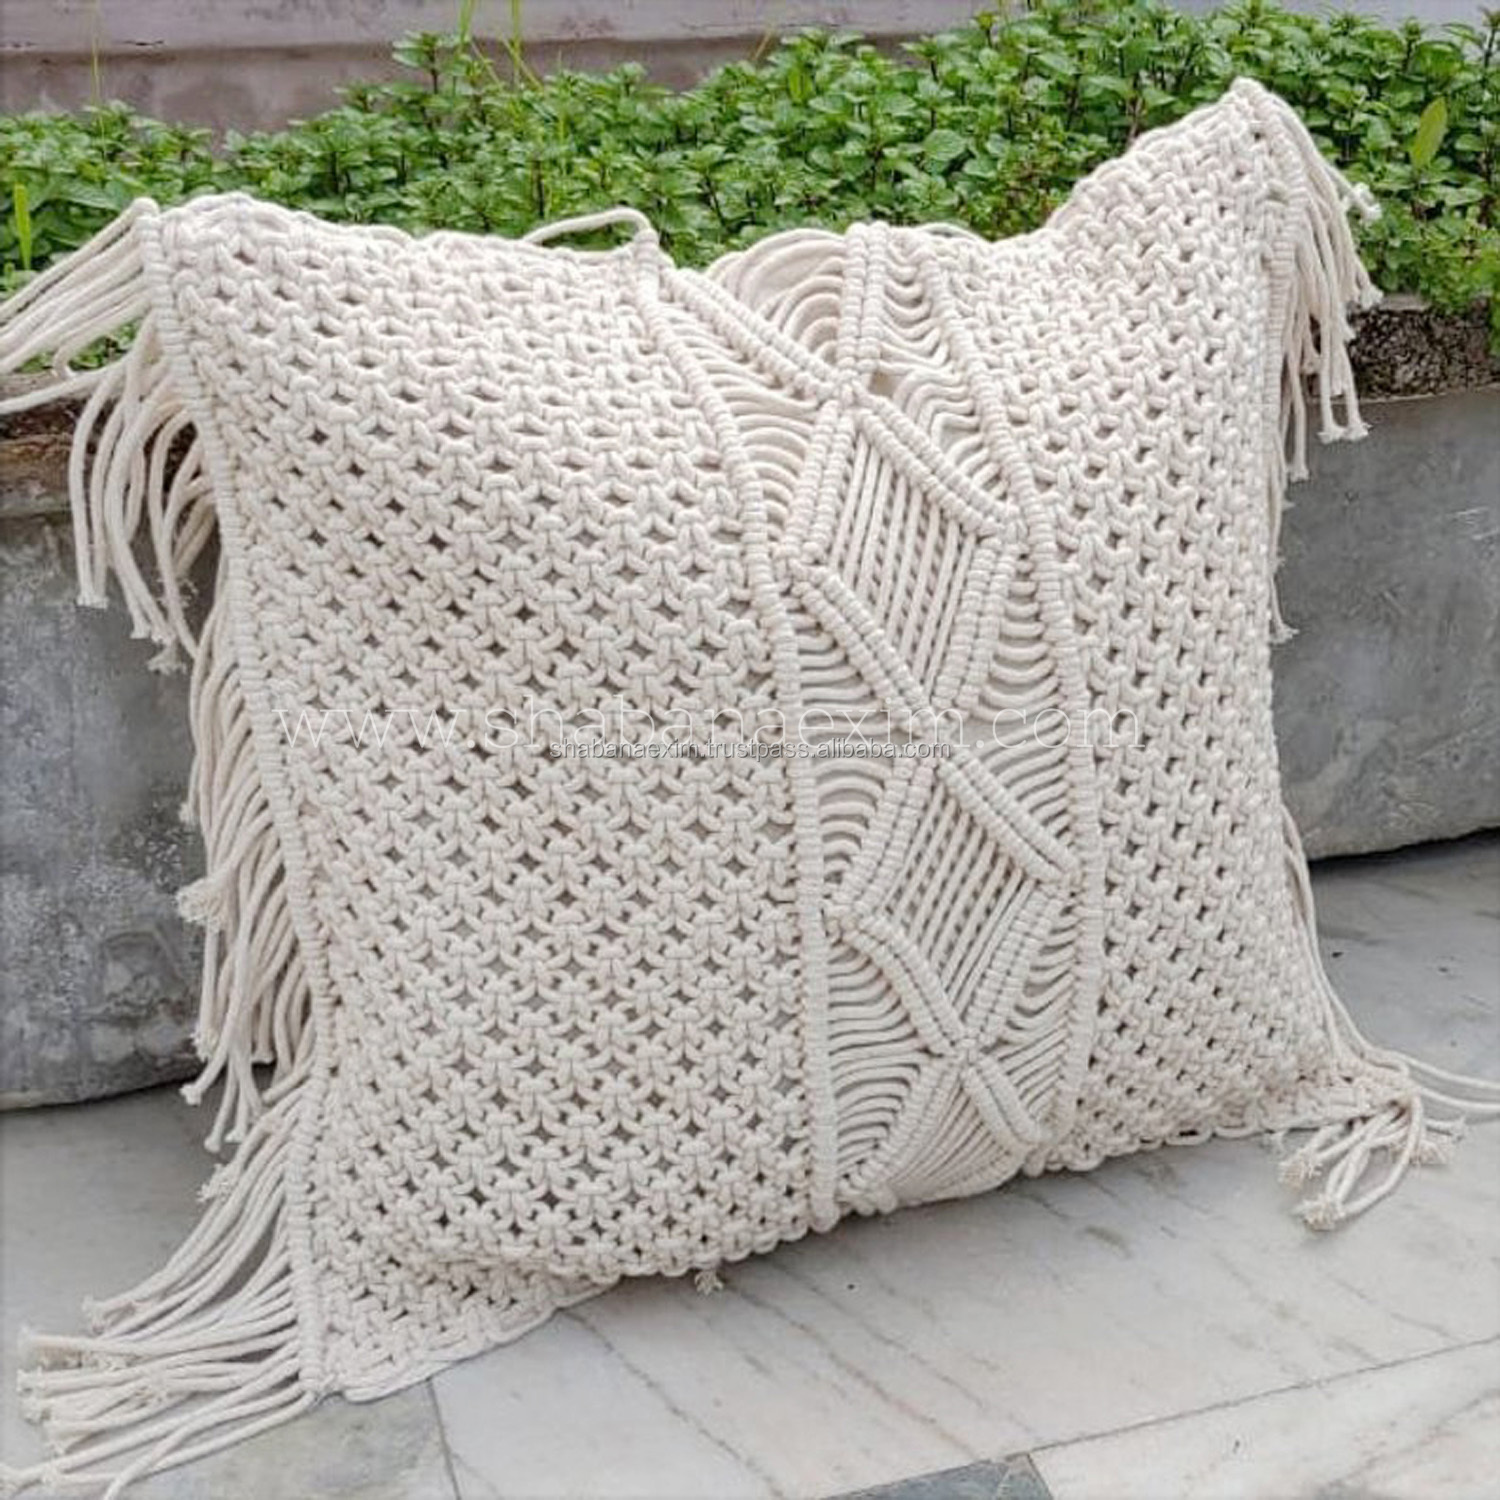 tassel cushion cover macrame cotton cushion cover plain pillow cover luxury buy indian style luxury cushion covers luxury chair cover plain cotton